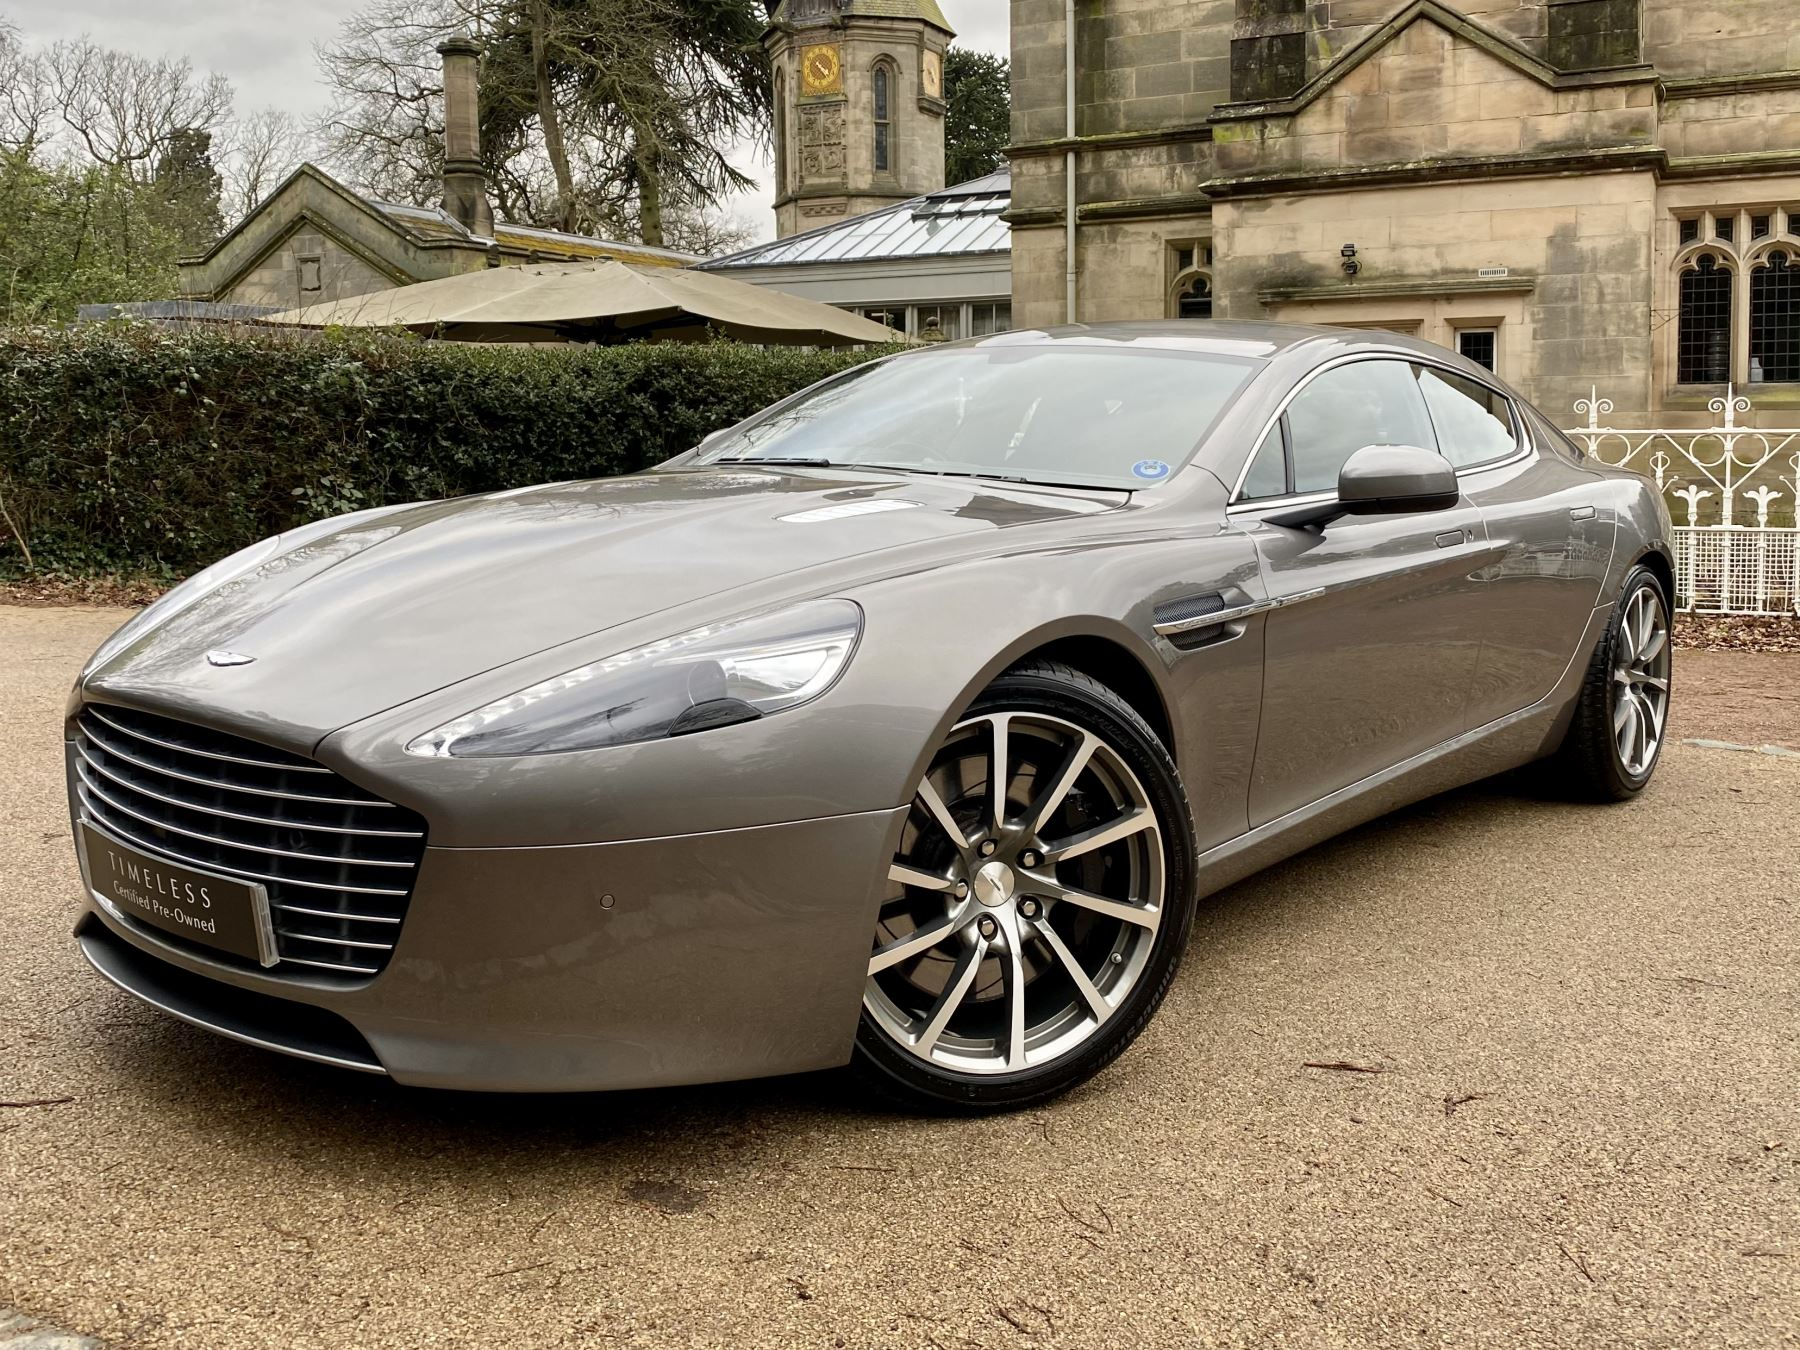 Aston Martin Rapide S V12 4dr Touchtronic 5.9 Automatic 5 door Saloon (2014)